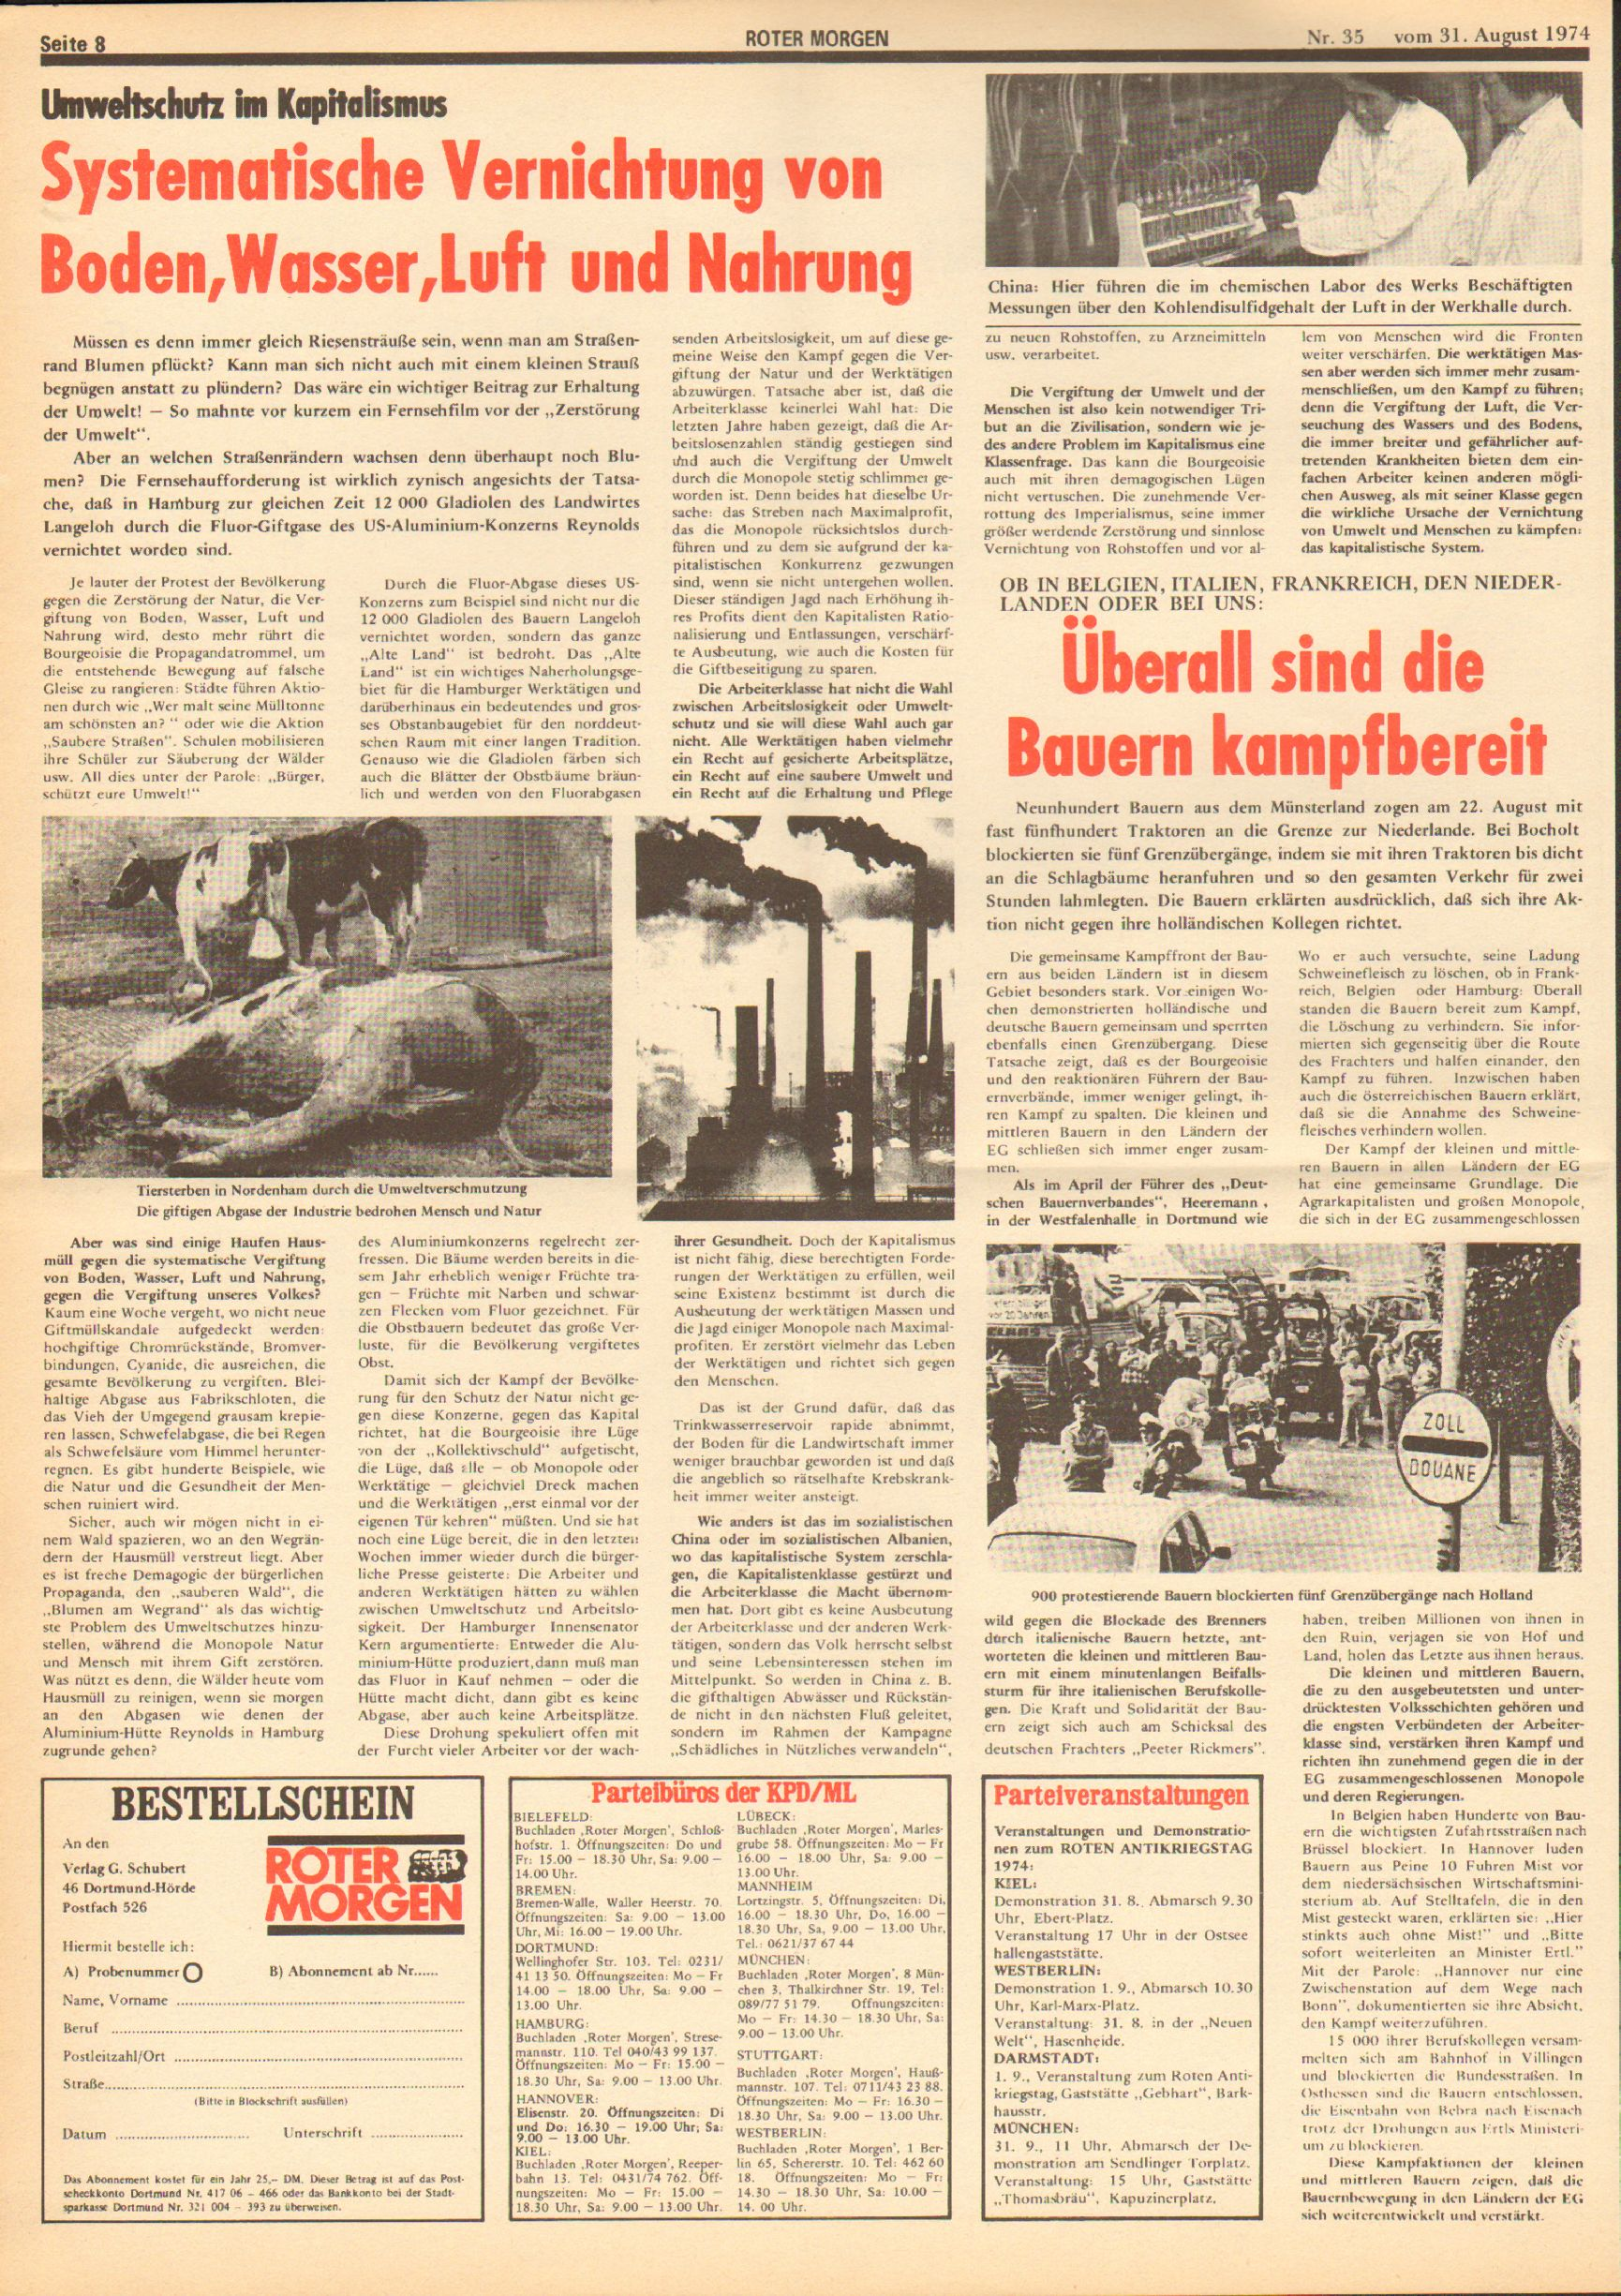 Roter Morgen, 8. Jg., 31. August 1974, Nr. 35, Seite 8